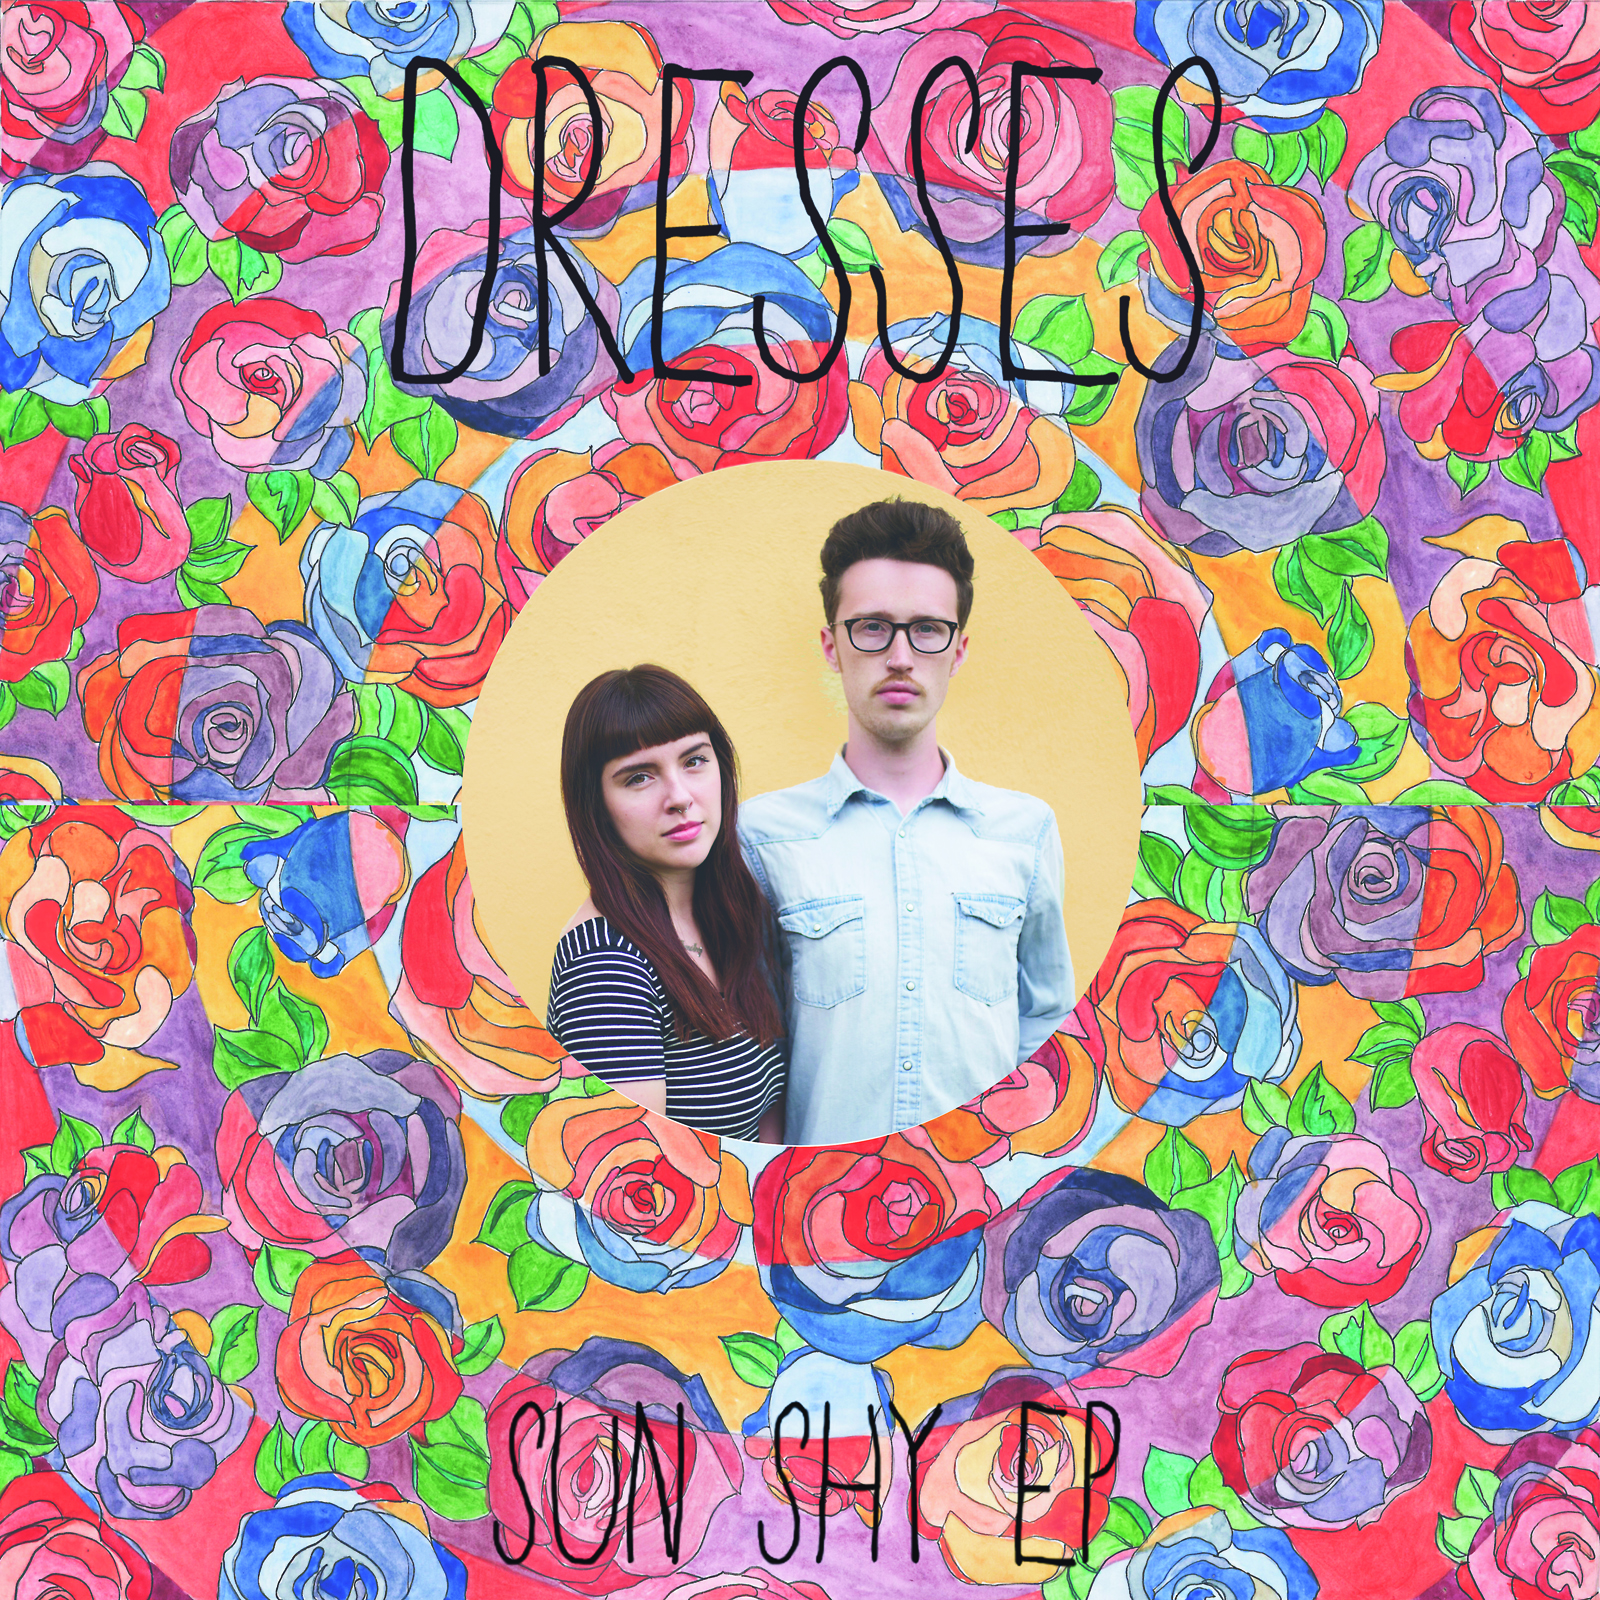 Dresses - Painting Roses (Official Video)   Directed by Tim Hendrix   VideoClip